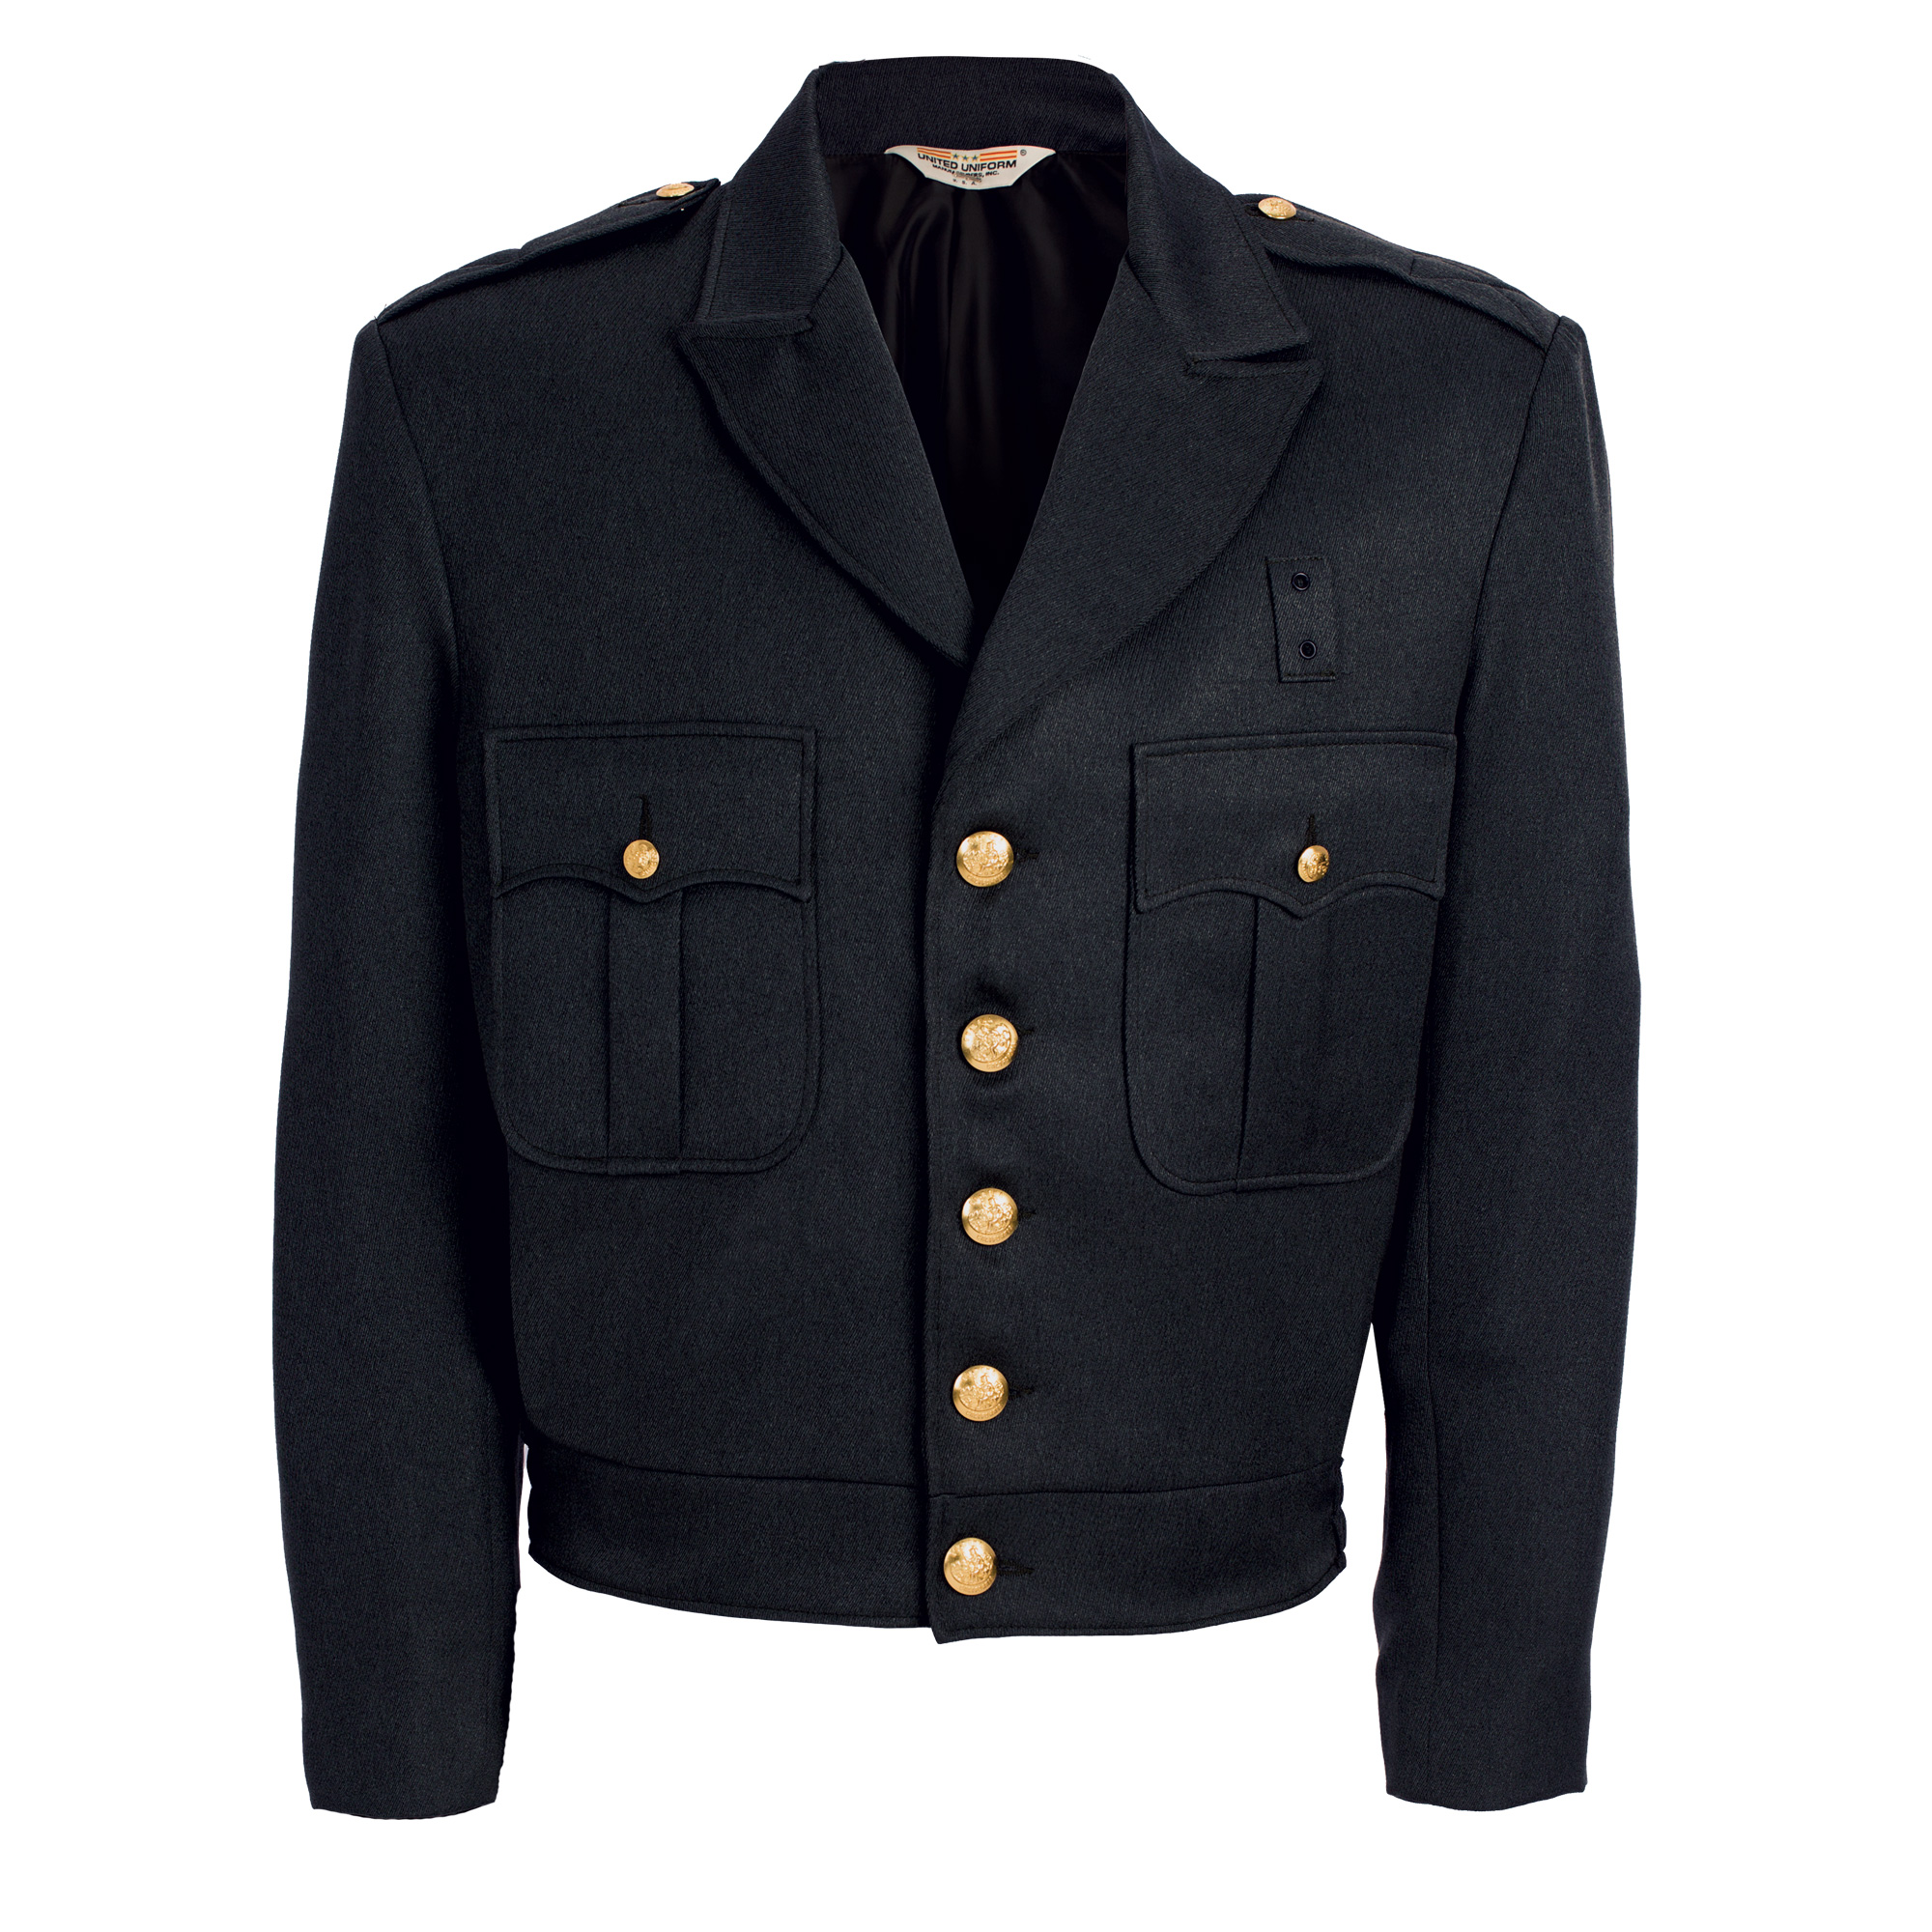 100% Polyester Button Front Ike Jacket, LAPD Navy